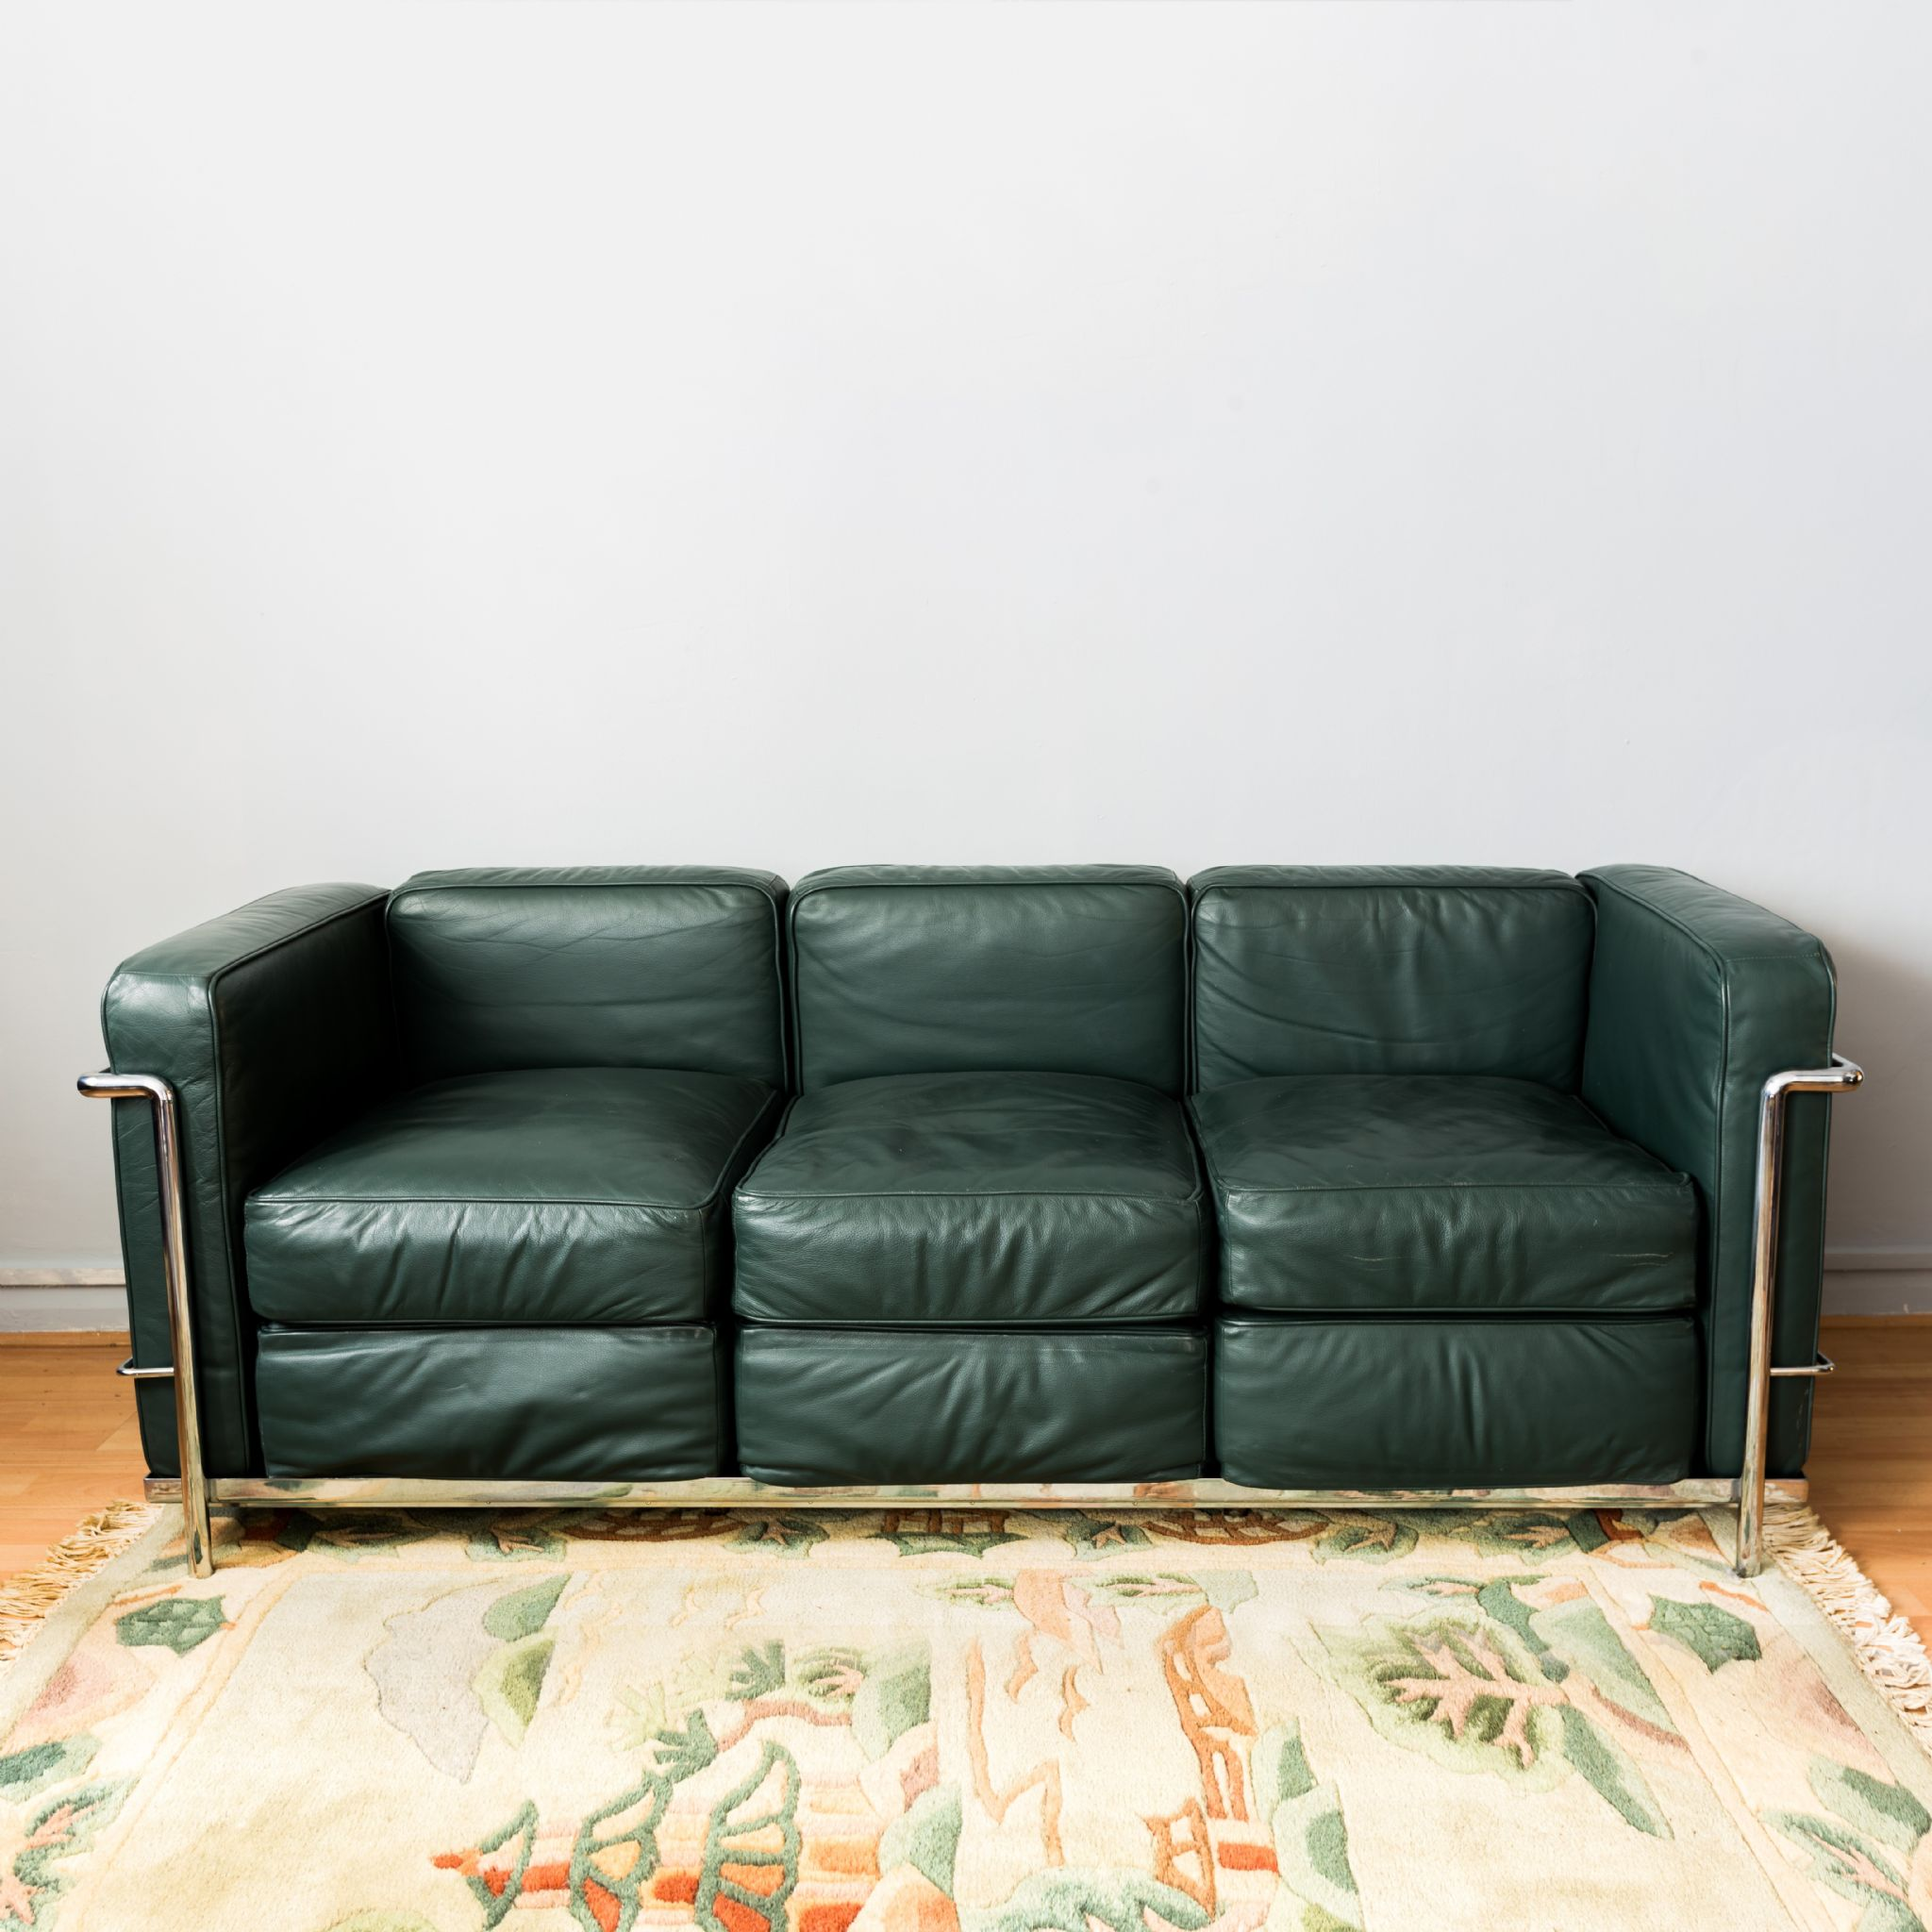 Le corbusier lc2 green leather sofa Le corbusier lc2 sofa